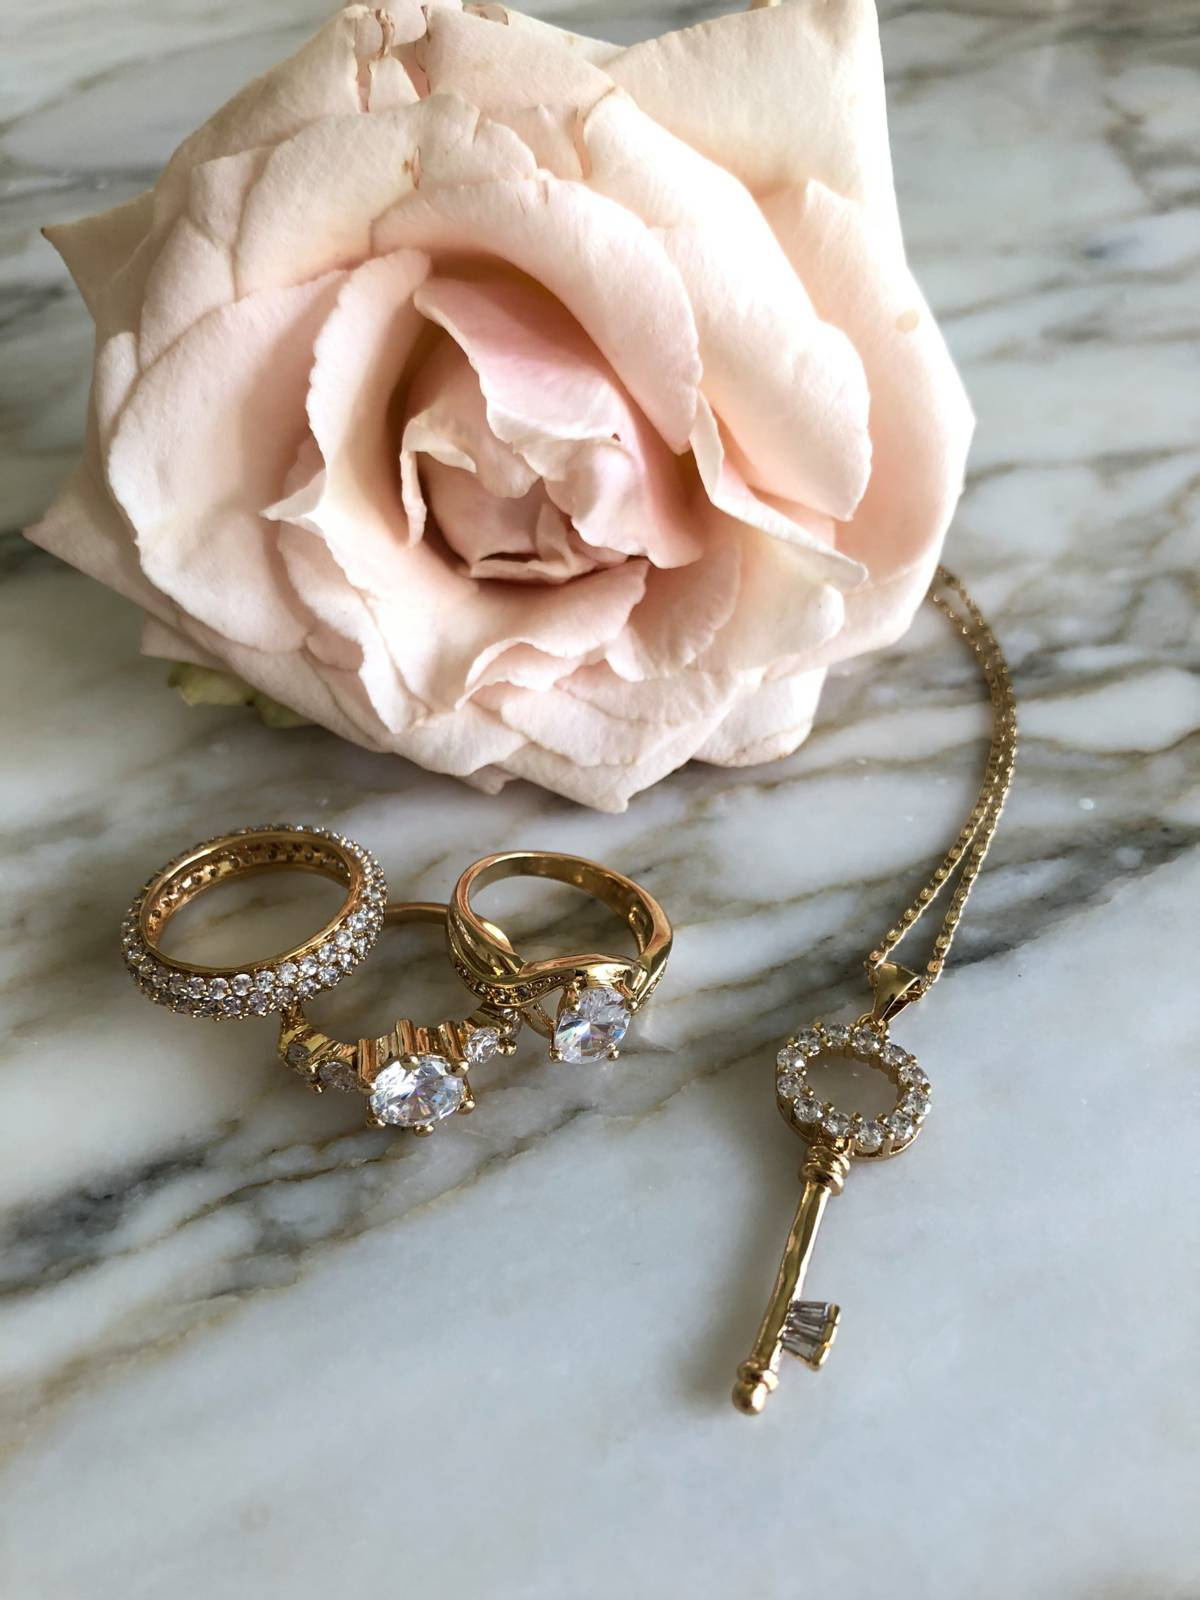 The Crystal Key Necklace